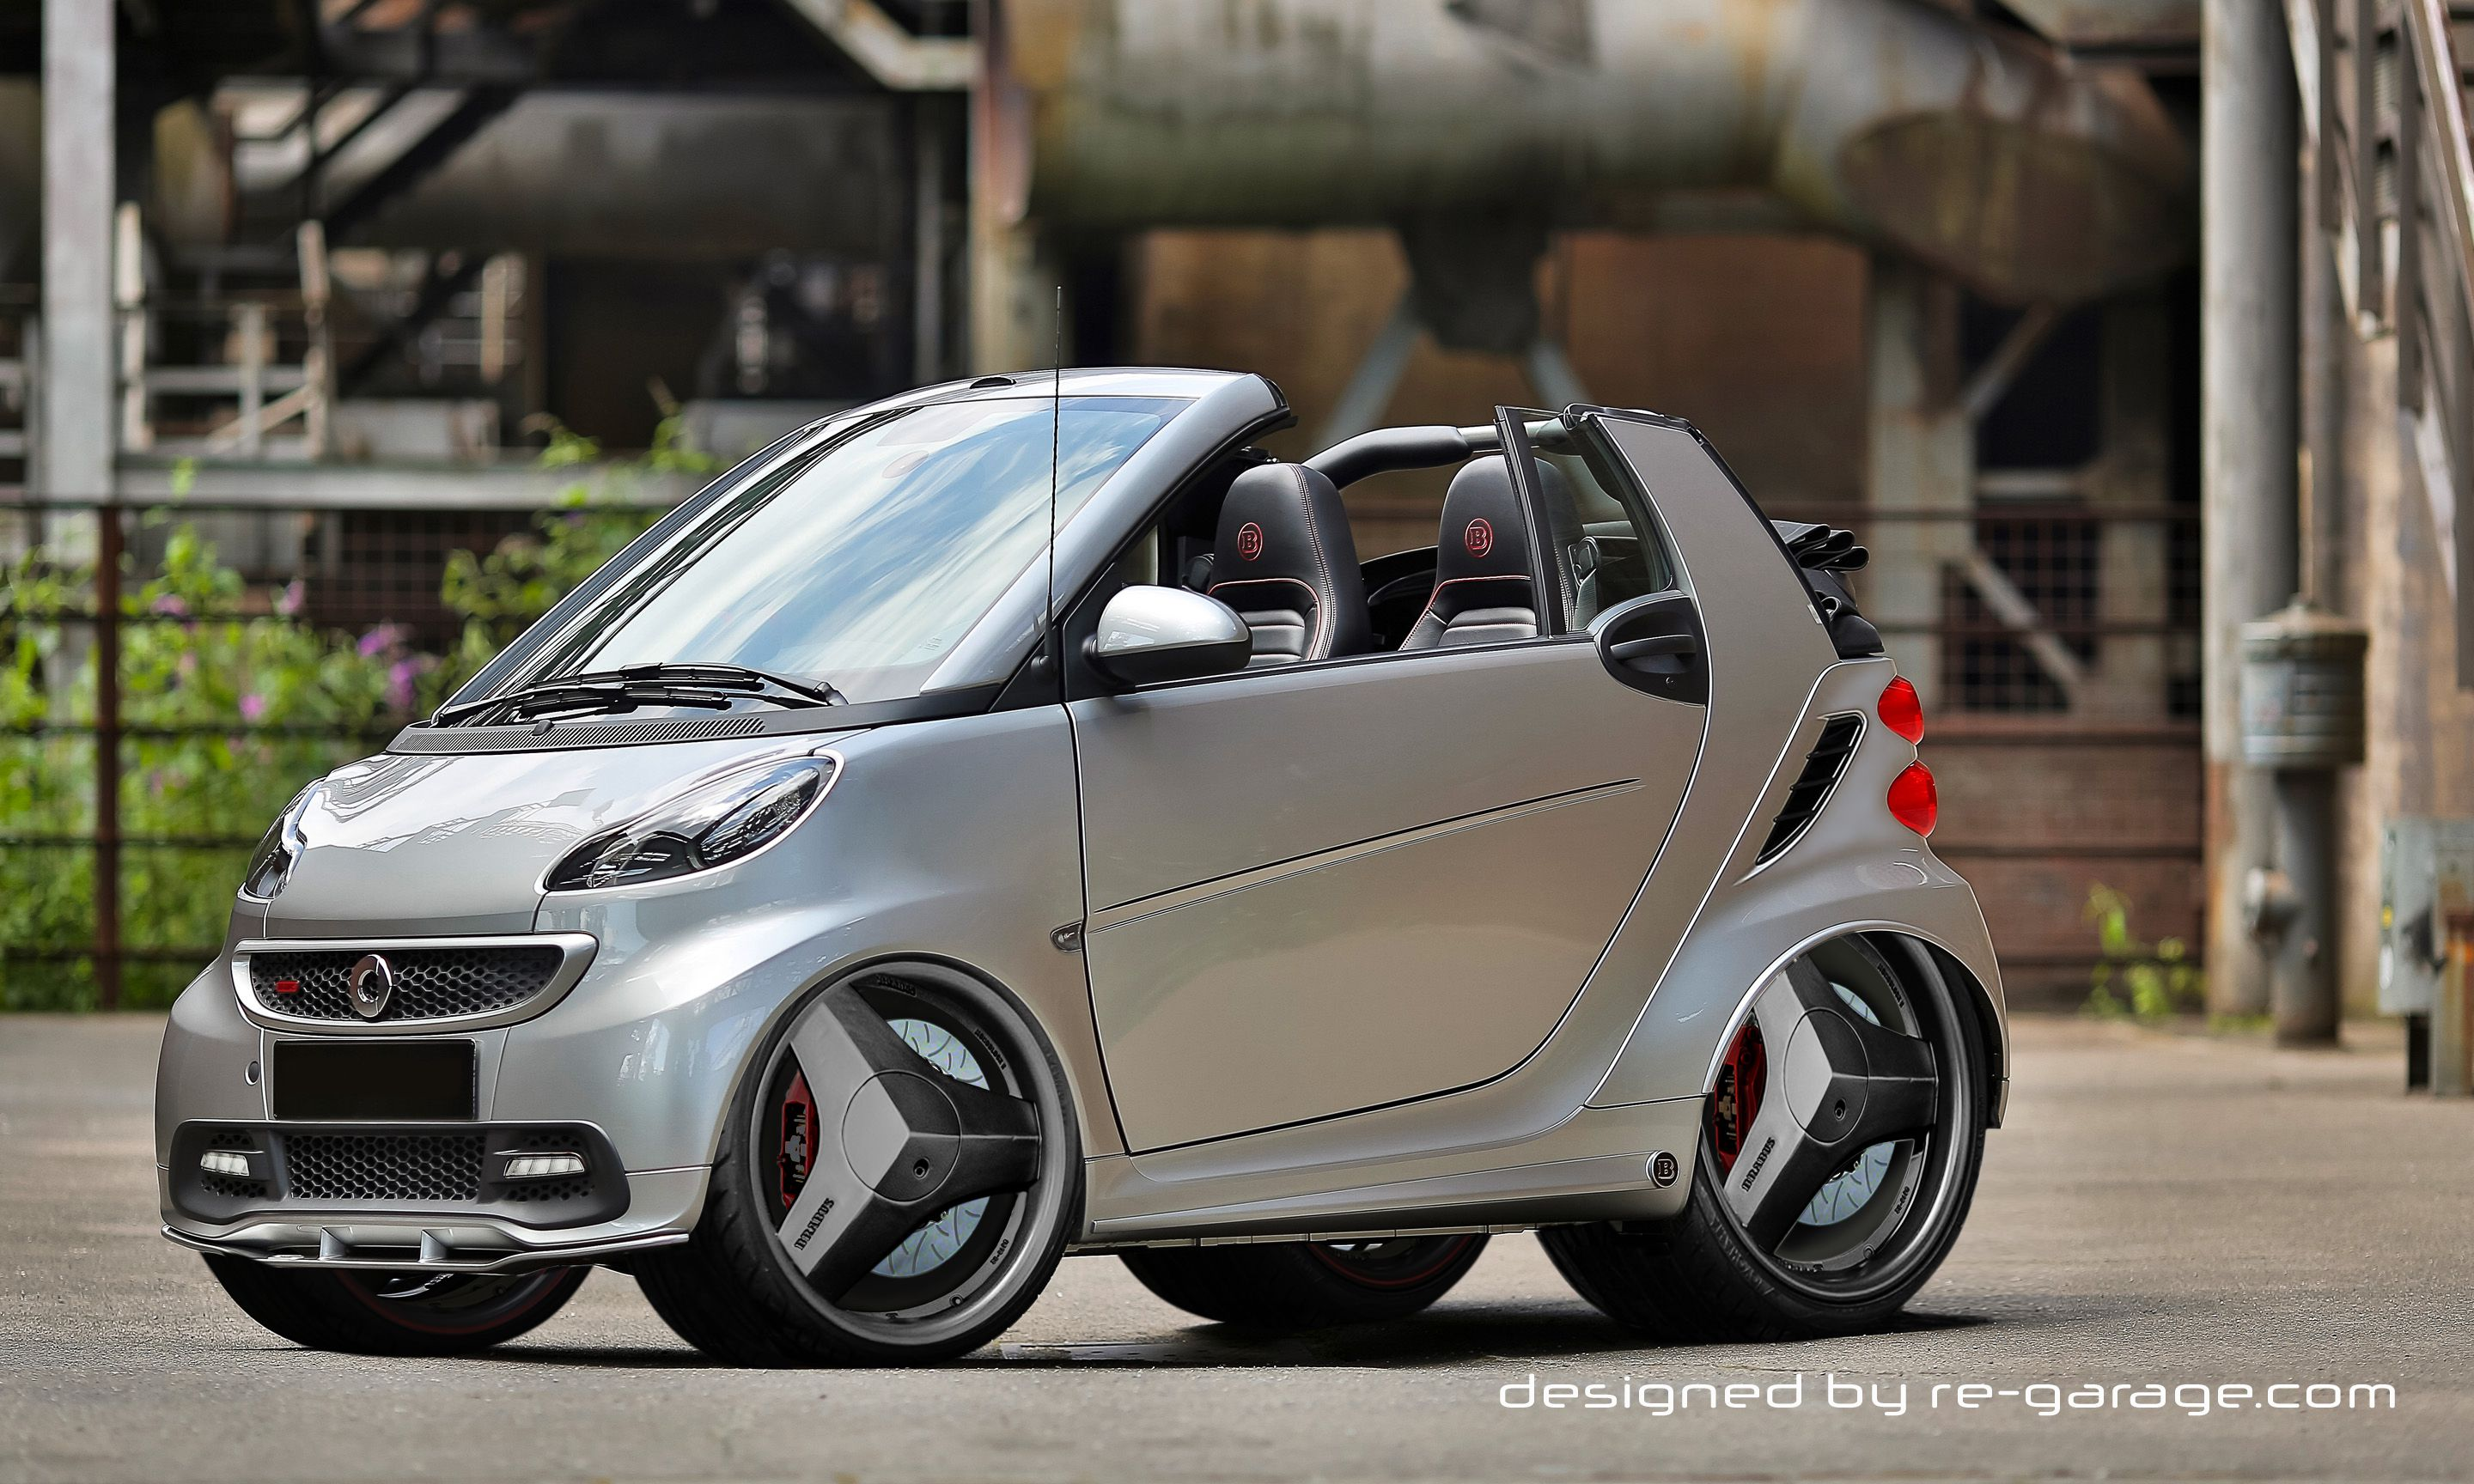 smart-Brabus-10th-anniversary re-garage